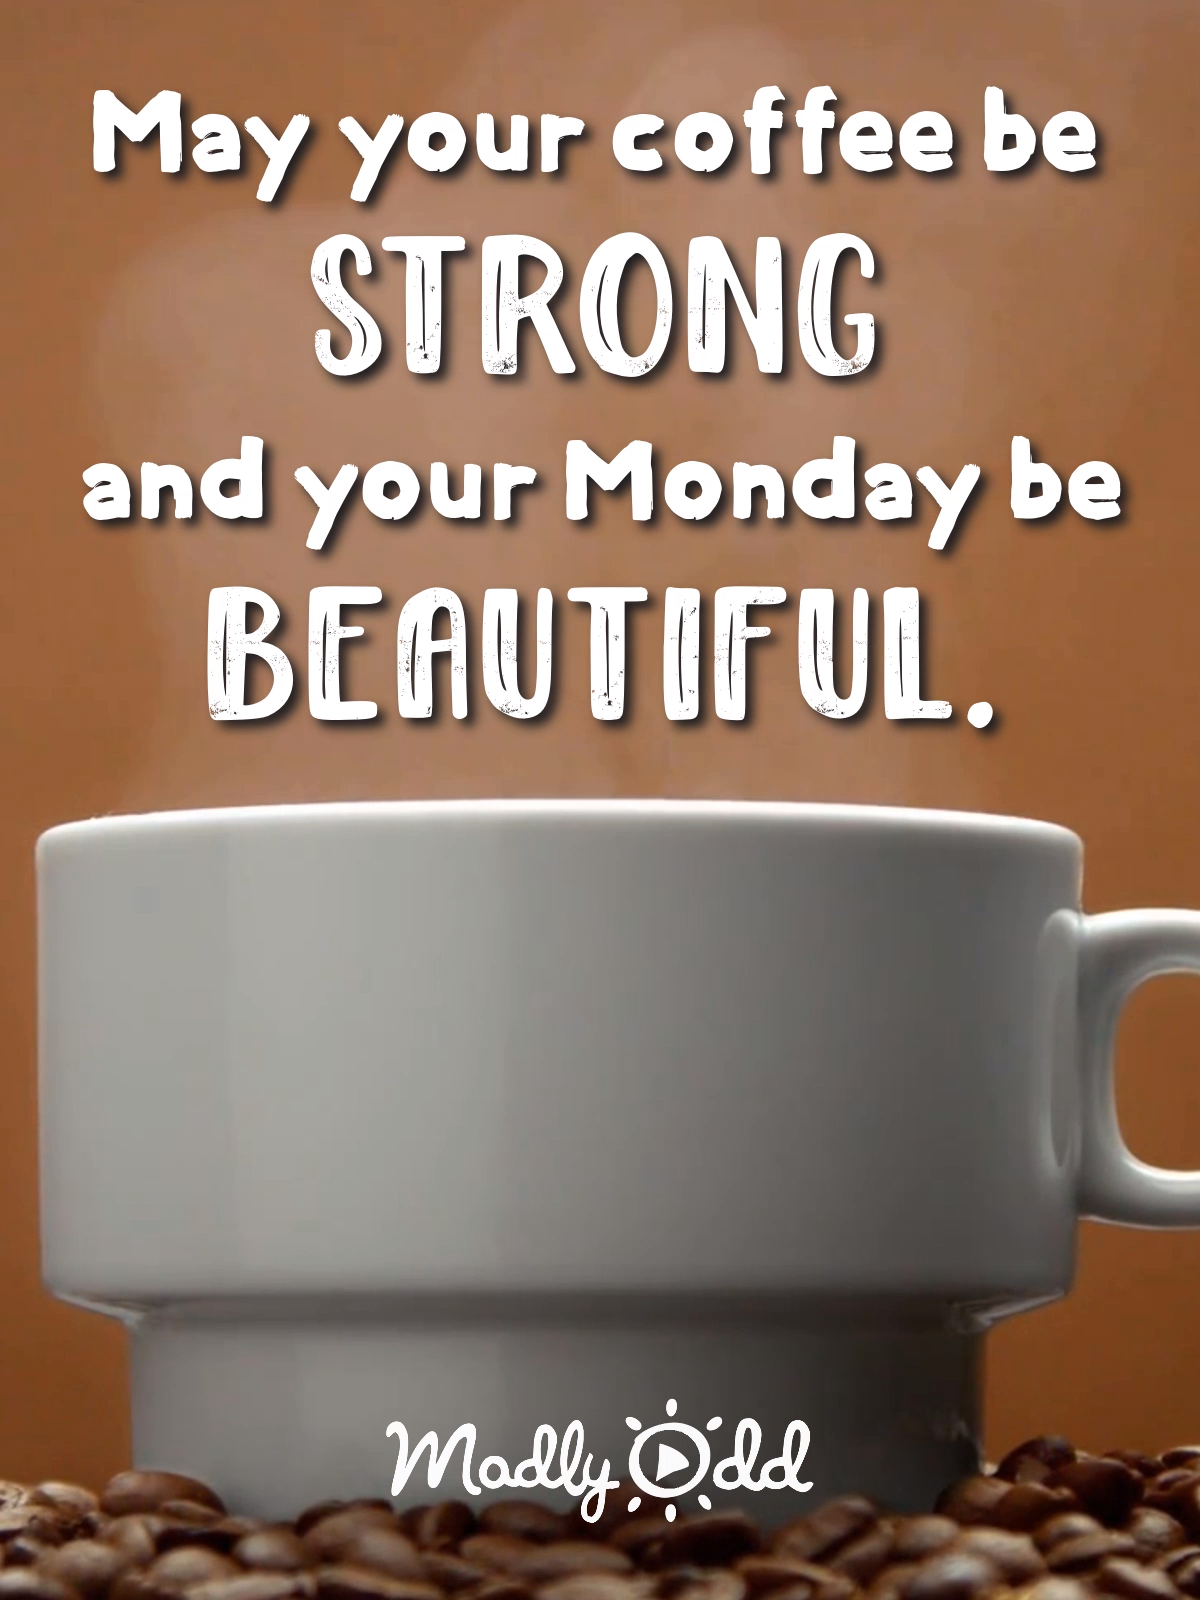 May your coffee be strong and your Monday be beautiful!